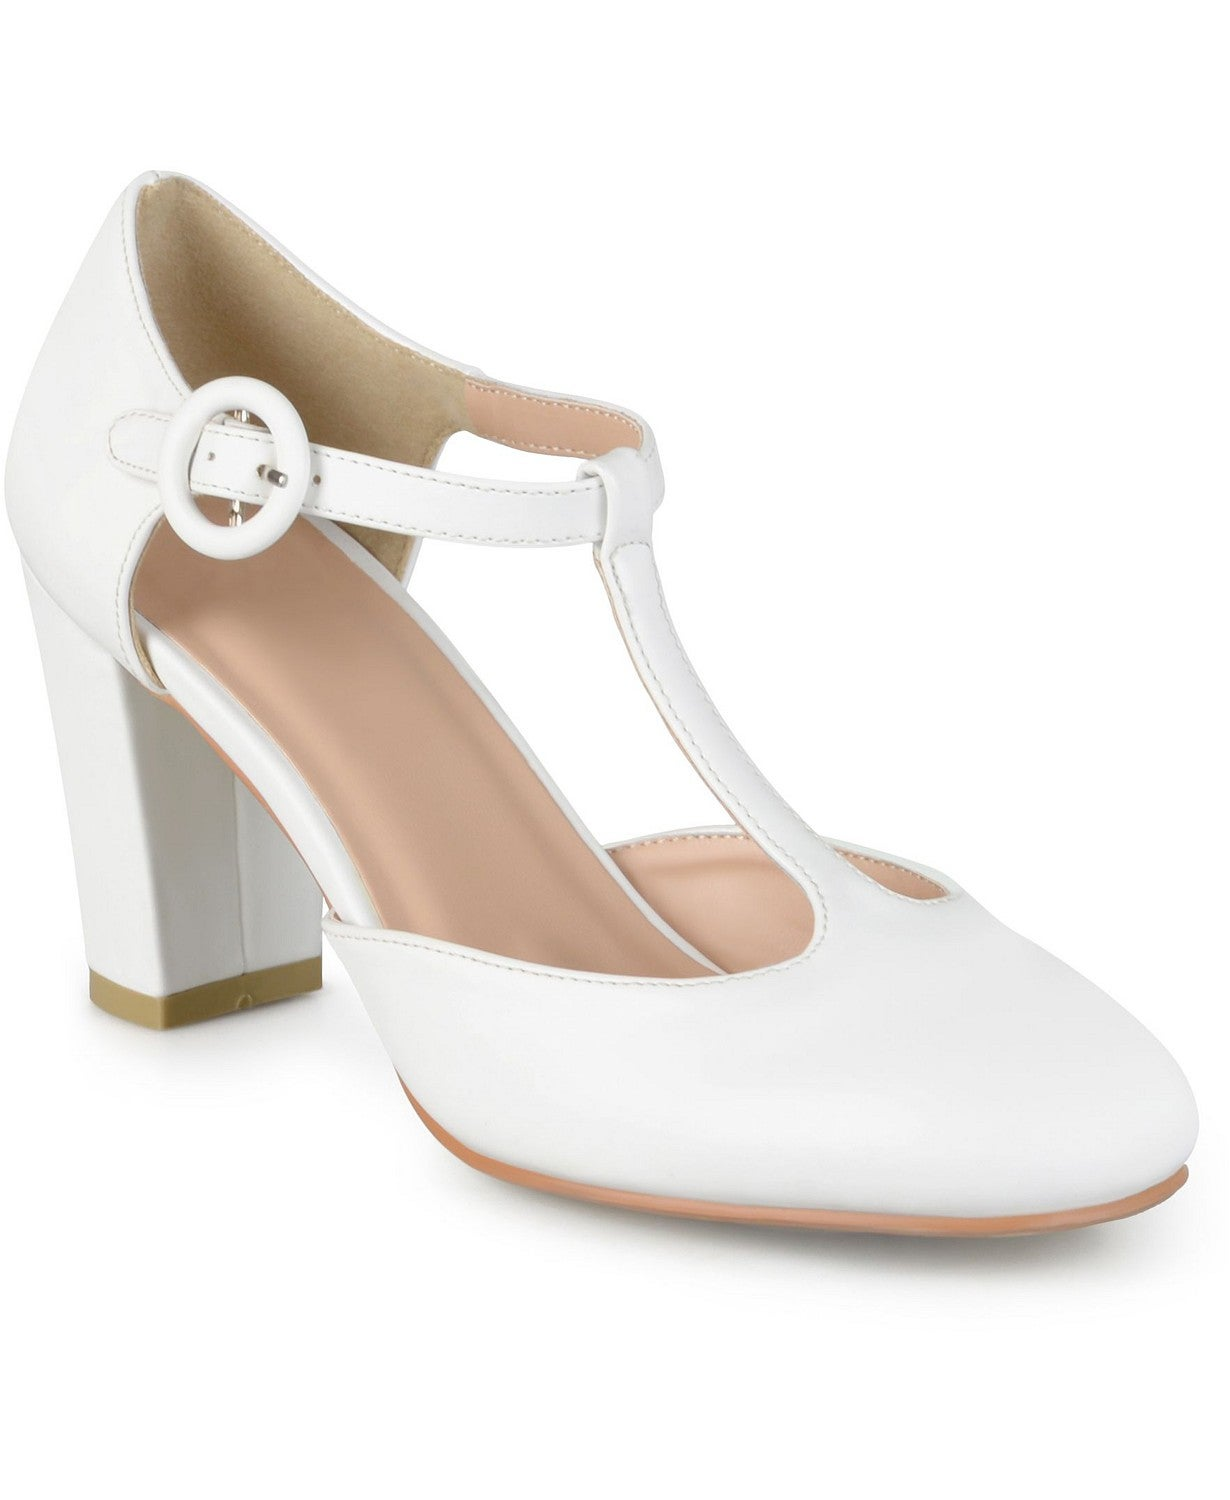 Journee Collection Talie Pumps